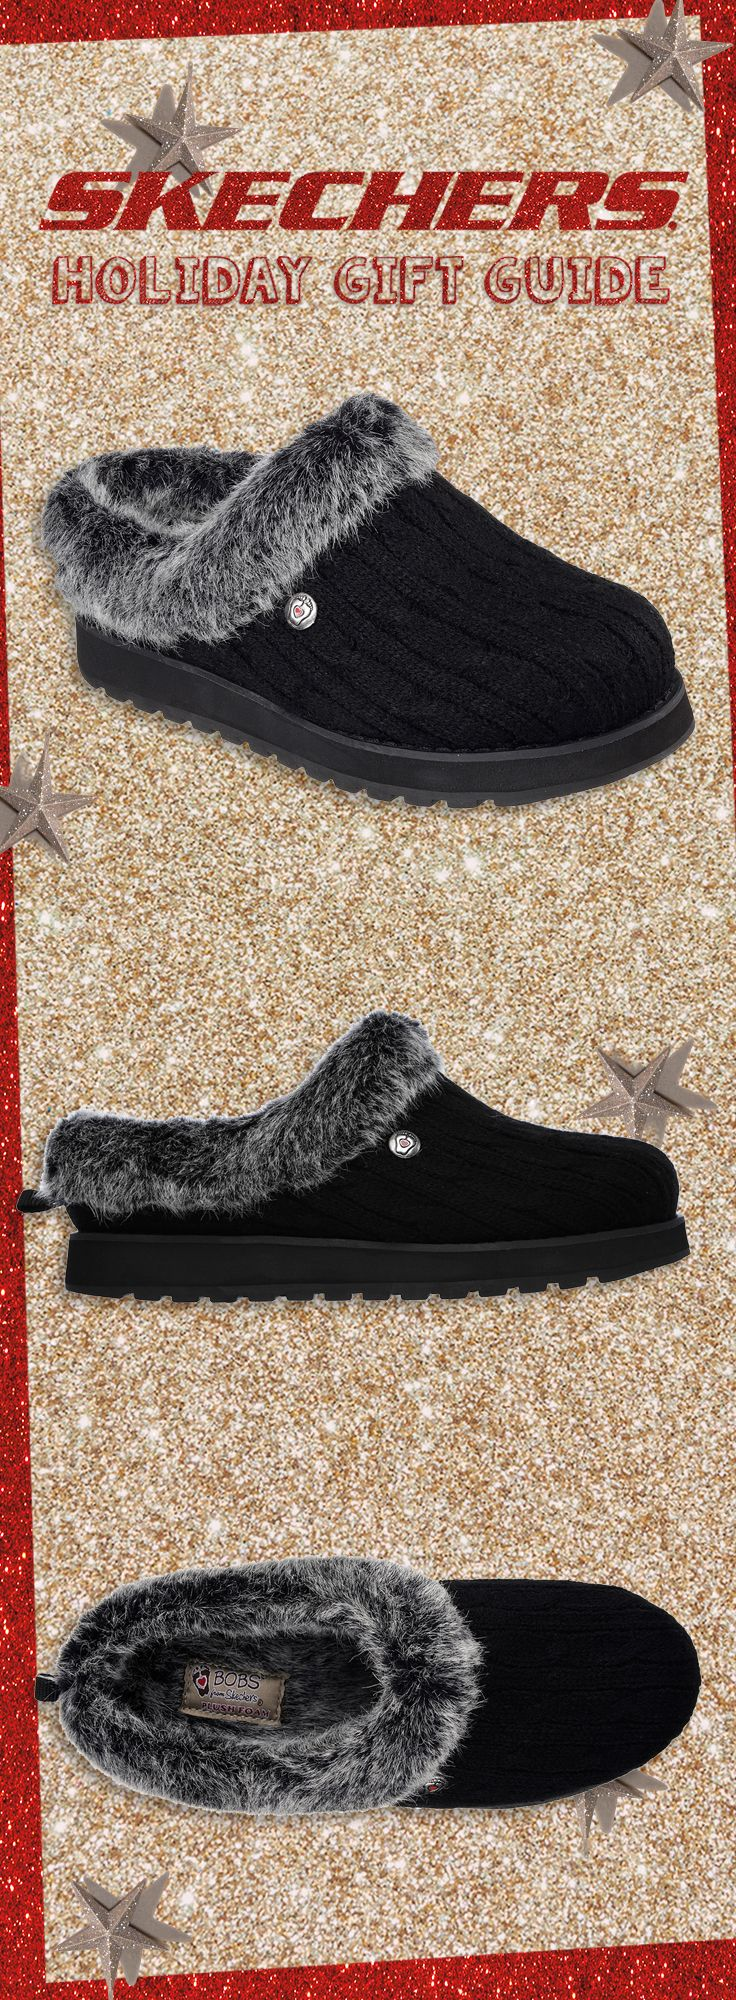 Stay cozy and comfortable in the Skechers BOBS Keepsakes slipper. #SKECHERSholiday